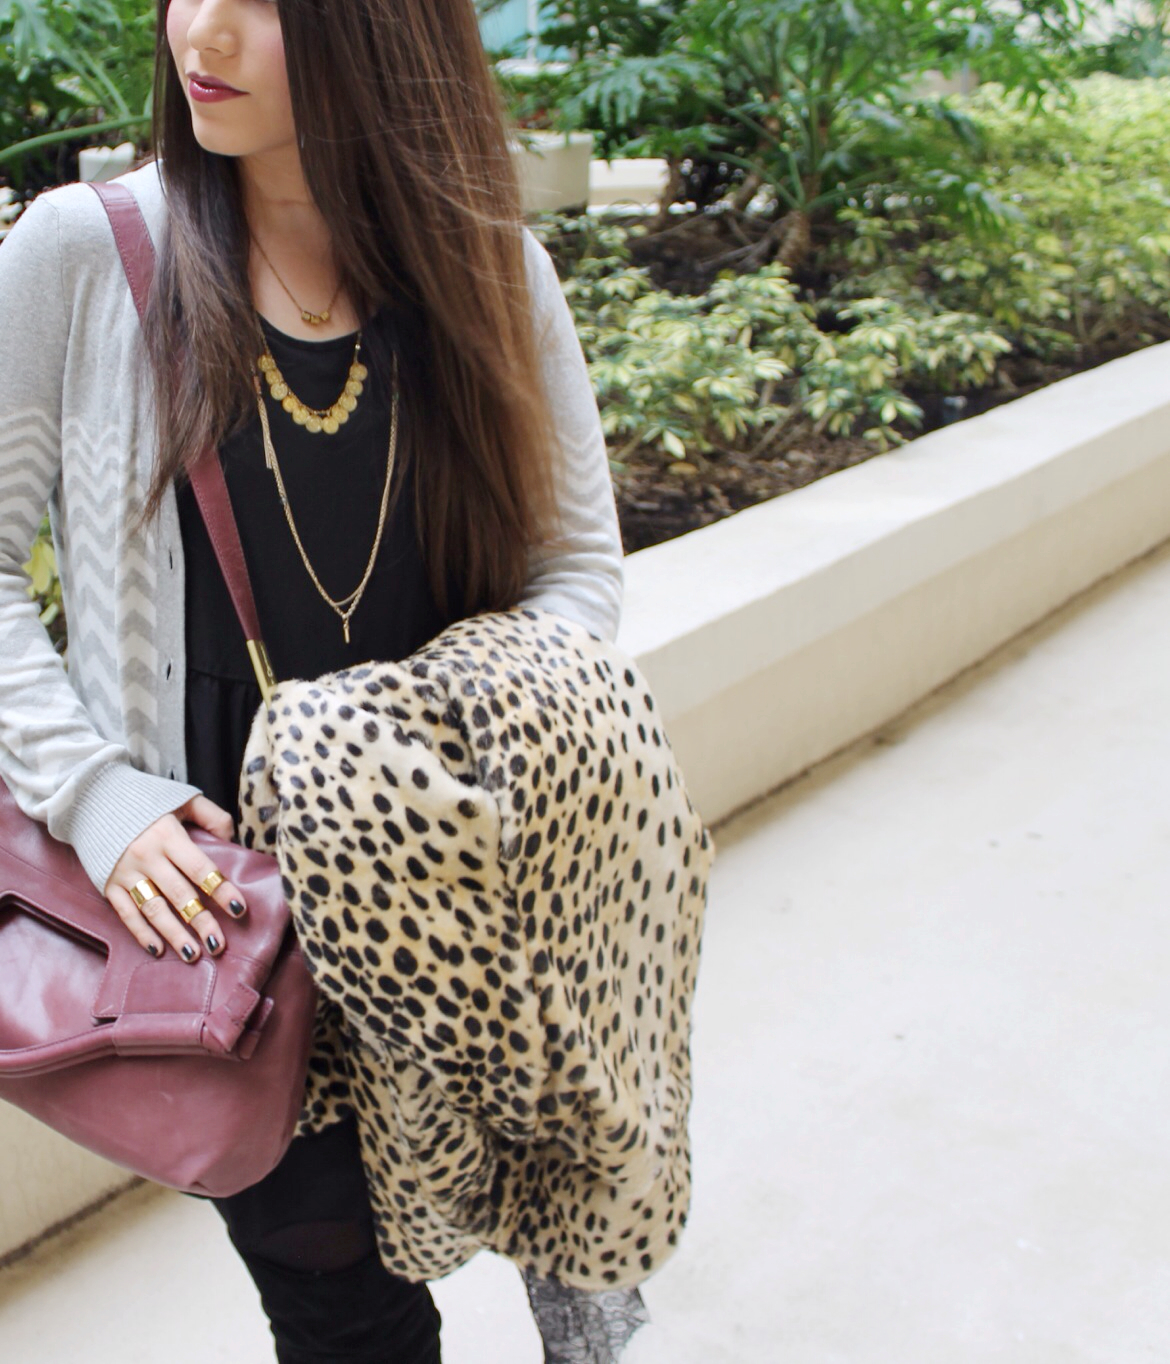 T.J.Maxx Fall Layering #Maxxinista leopard coat chevron cardigan gold necklaces foley corinna wine bag necklaces gold rings knuckledusters over-the-knee boots _ glitterinc.com